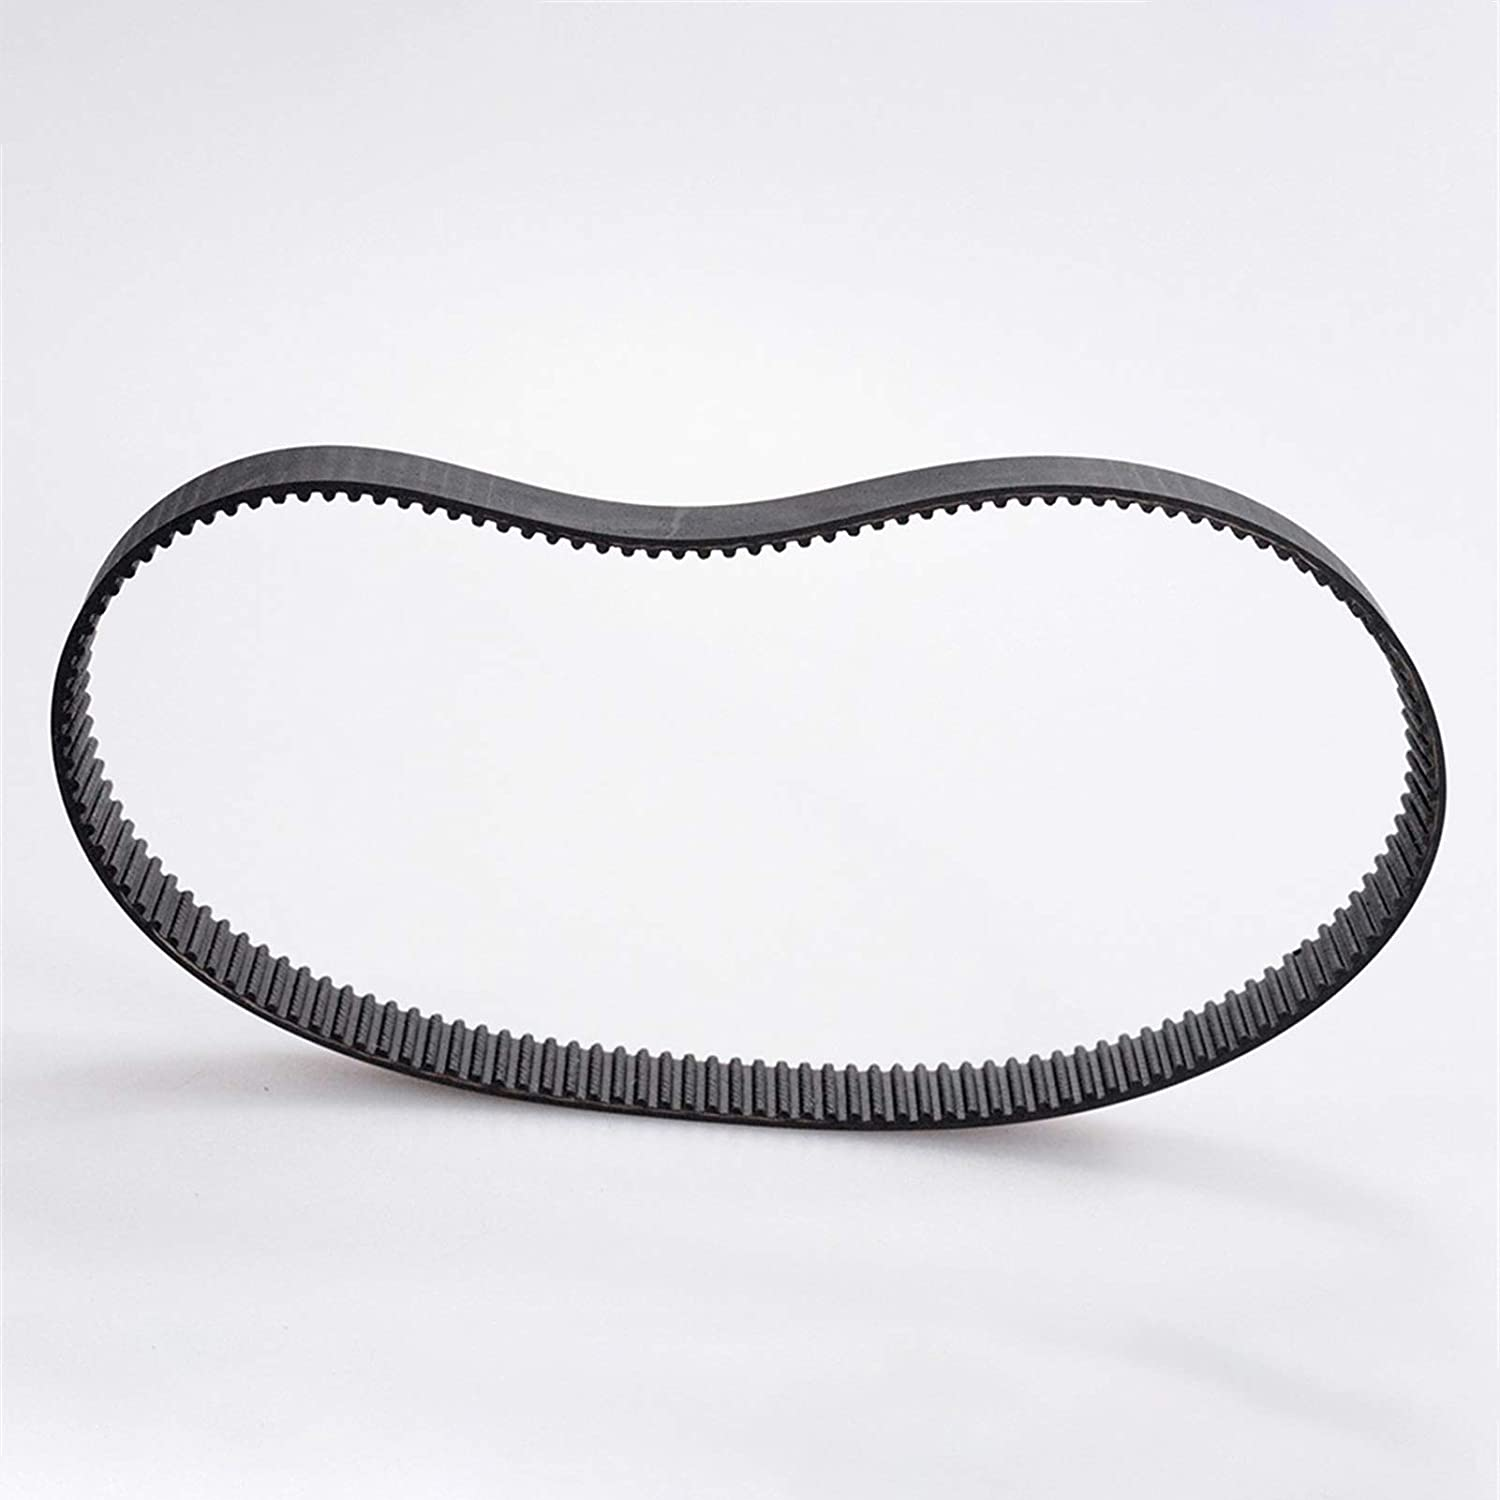 6//9//10//15mm Width Rubbe Toothed Belt Closed Loop Synchronous Belt Pitch 3mm Replacement parts Geeyu ZHaonan-timing belt HTD 3M Timing Belt Length 375//378//381//384//390//393//396//399mm